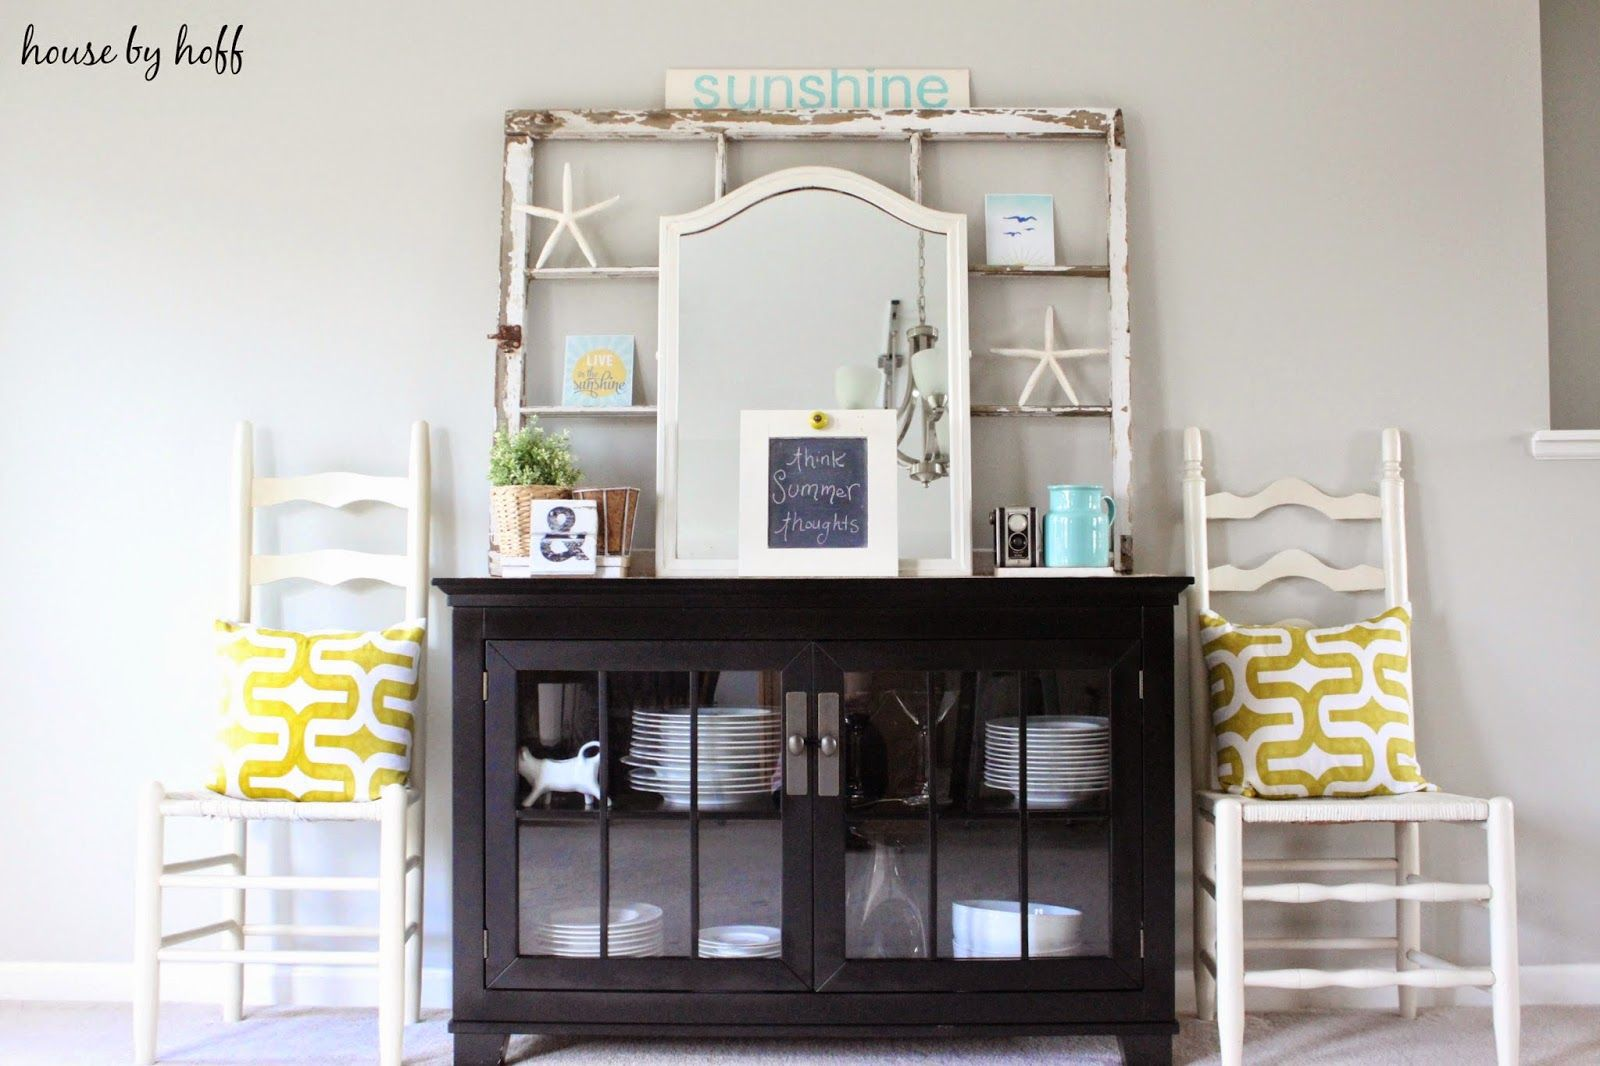 Lovely space by @April {House by Hoff} (And cool Premier Prints fabric pillows)